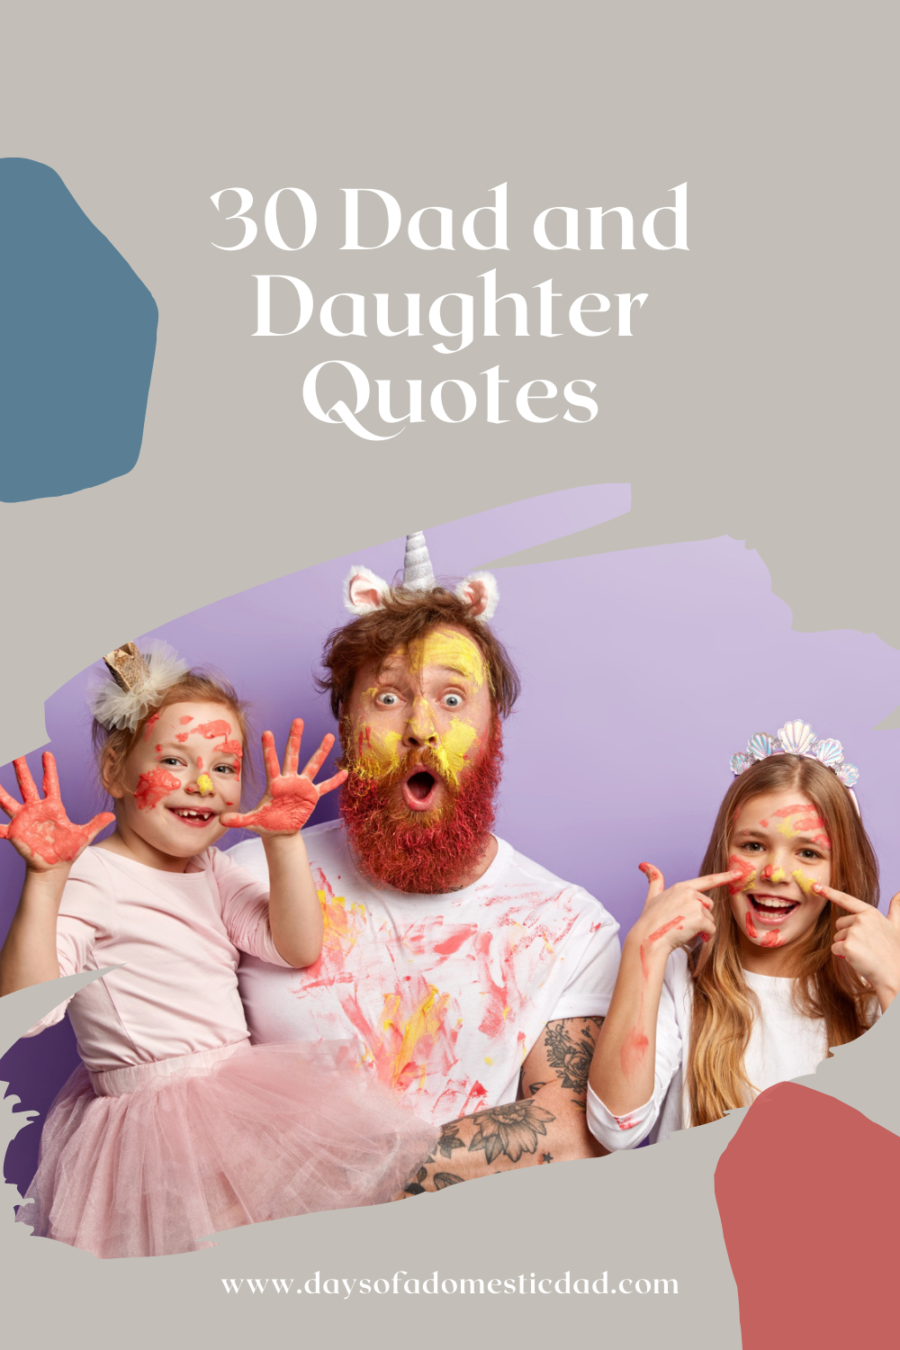 Small female child shows hands soiled with colourful gouache paintings, her glad sister has stains of watercolor on face, stunned father stares, have fun before mother returns from work.